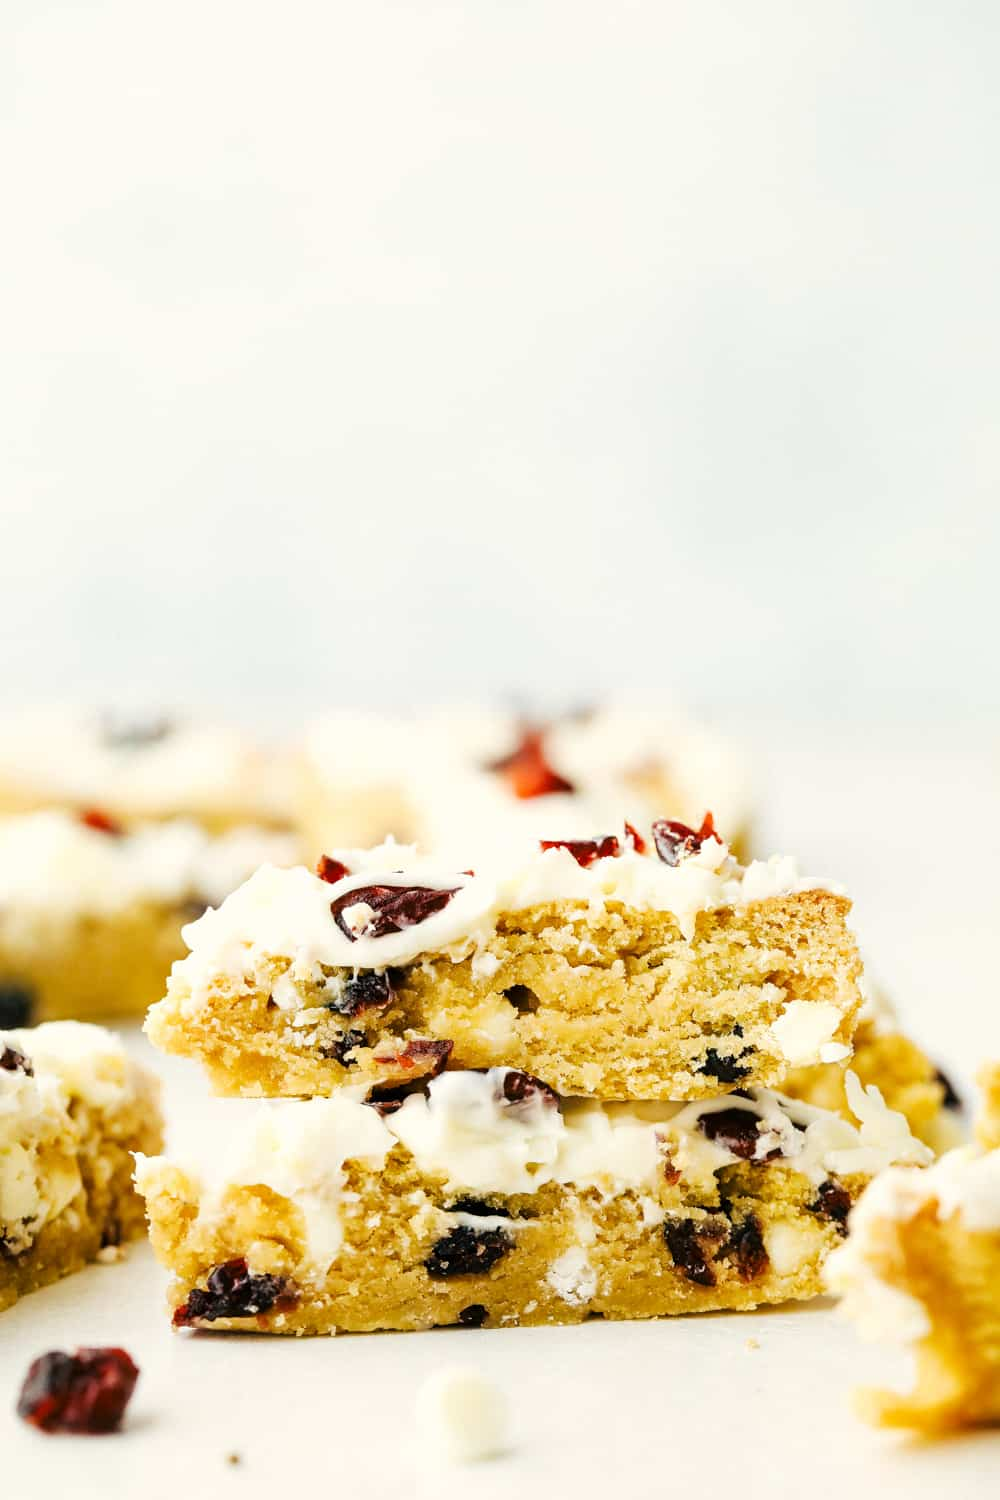 Cranberry bliss bars stacked on top of each other.